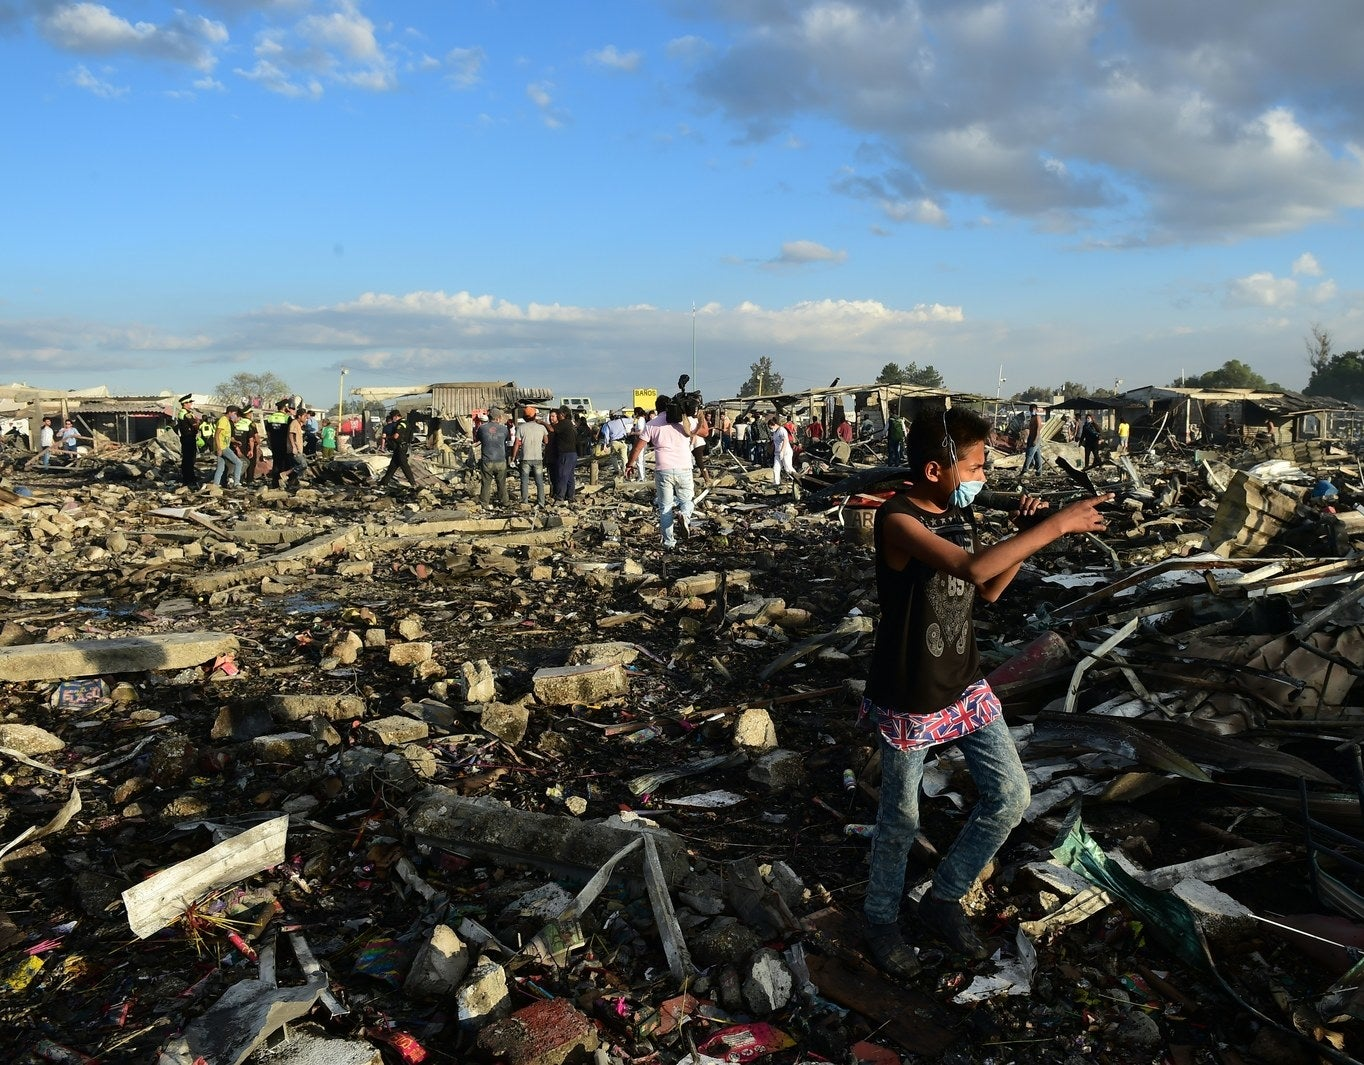 Local residents search among the debris.